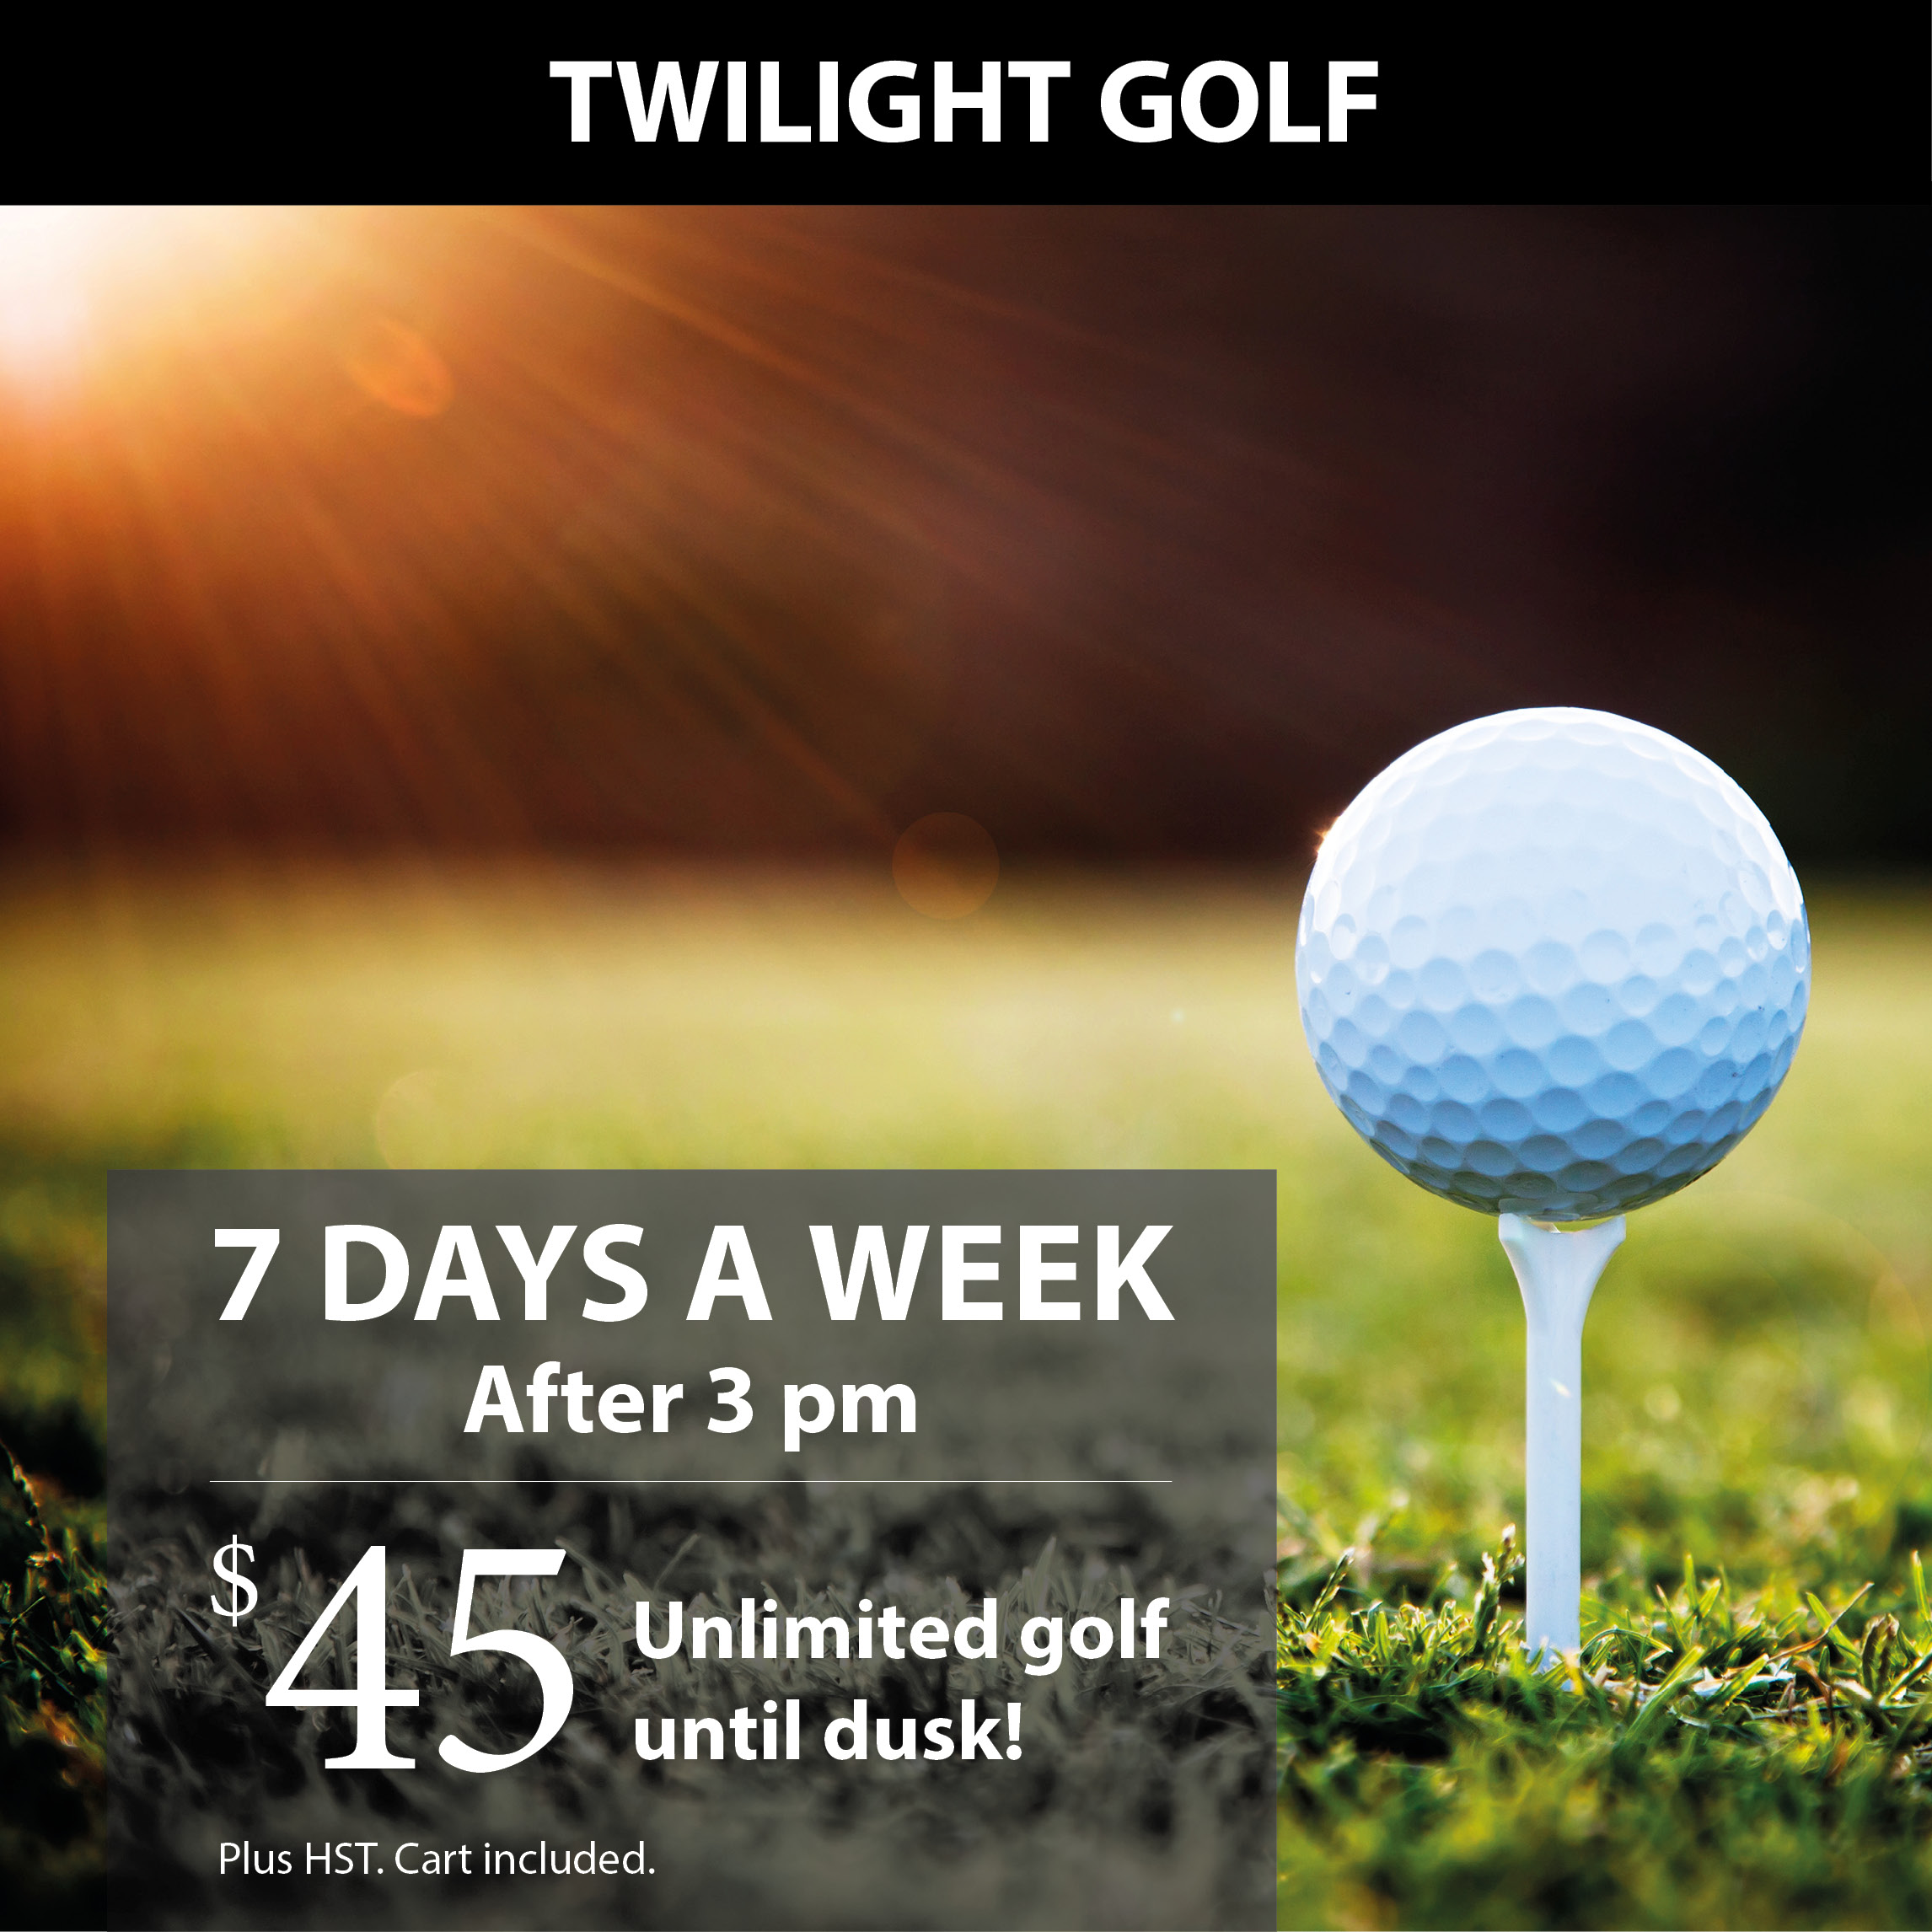 Play as many holes as you can with our Twilight golf special. Available after 3:00pm, 7 days a week!